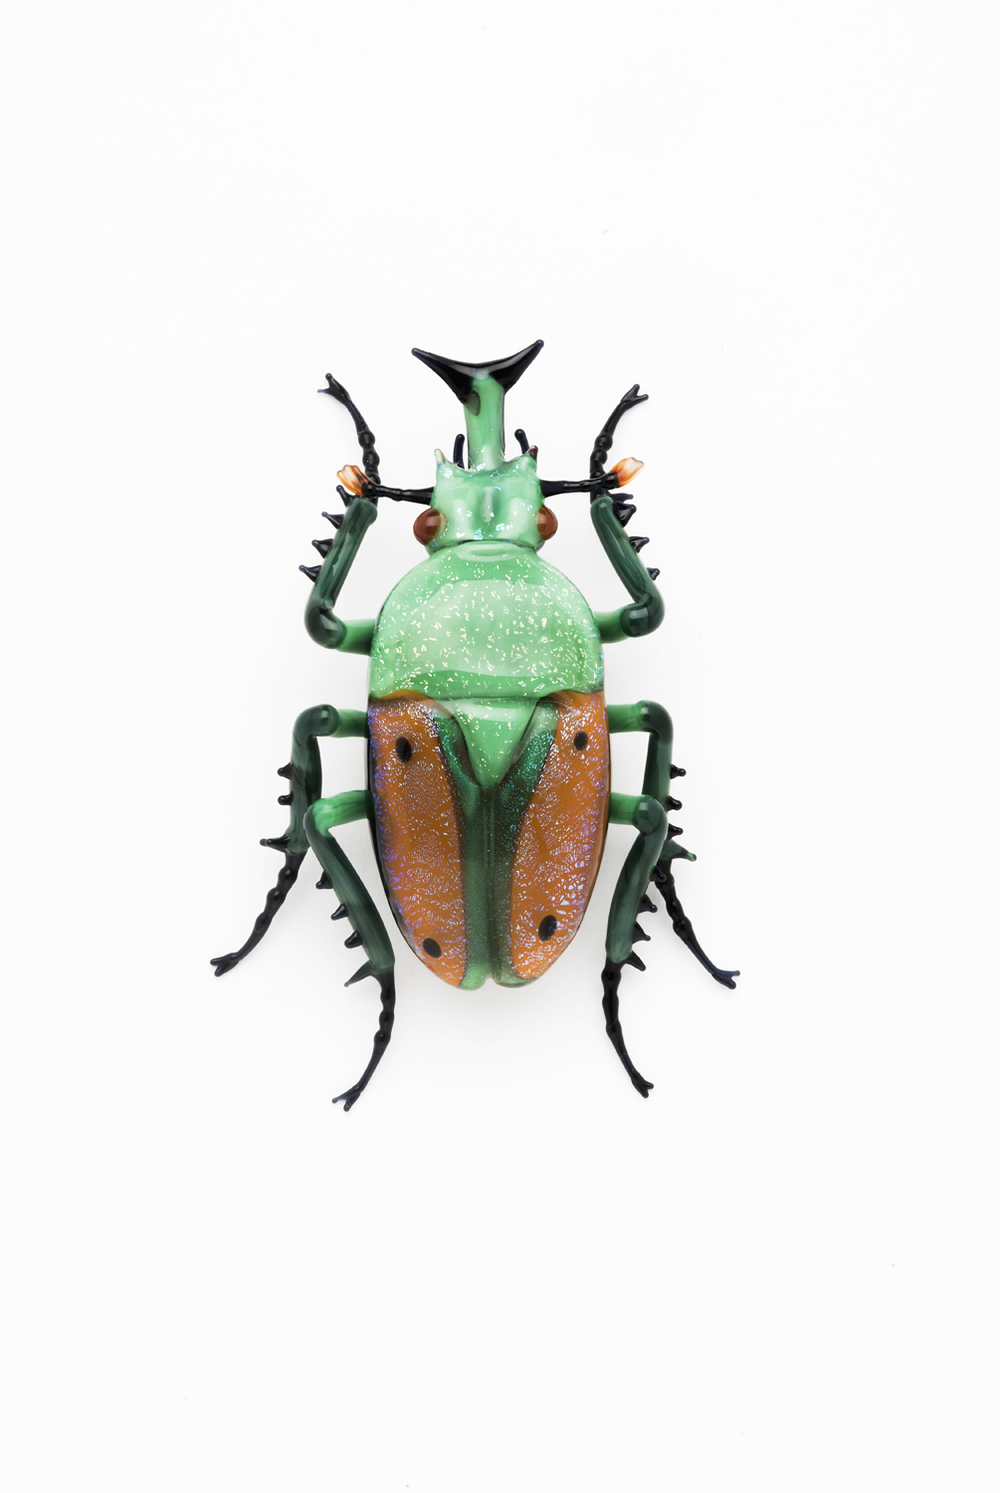 Vittorio Costantini,  Family: Scarabaeidae, Sub Family: Cetoniinae  (2005, soda-lime glass, 1 15/16 x 1 1/2 x 9/16 inches), VC.21